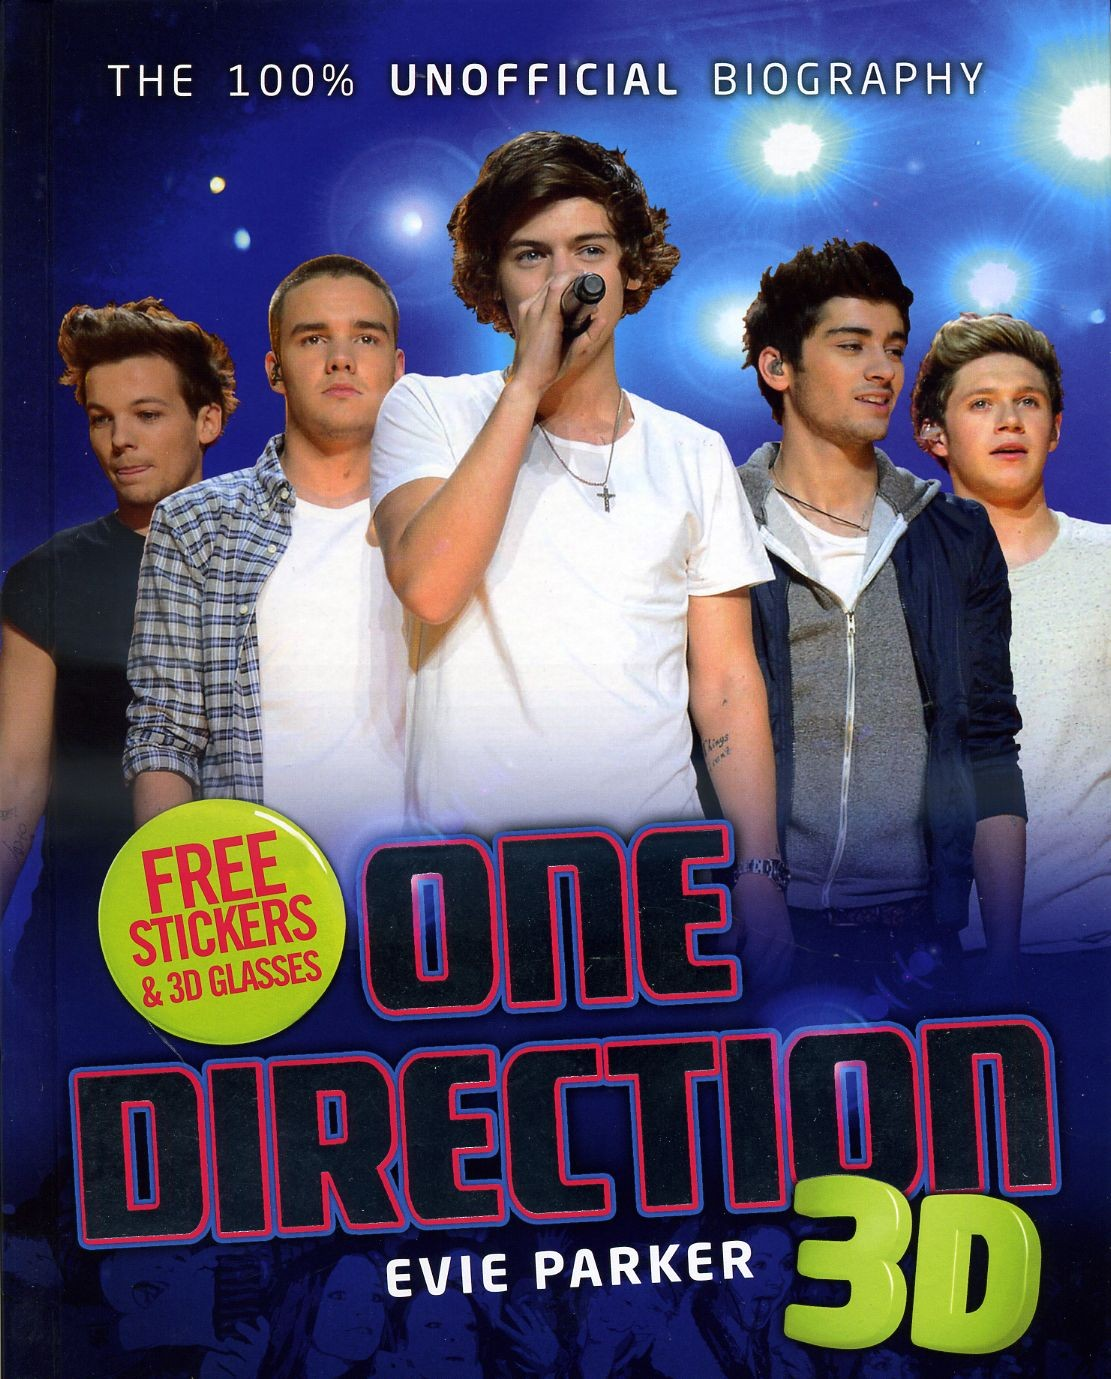 100% ONE DIRECTION: THE UNOFFICIAL BIOGRAPHY 3D - Random UK